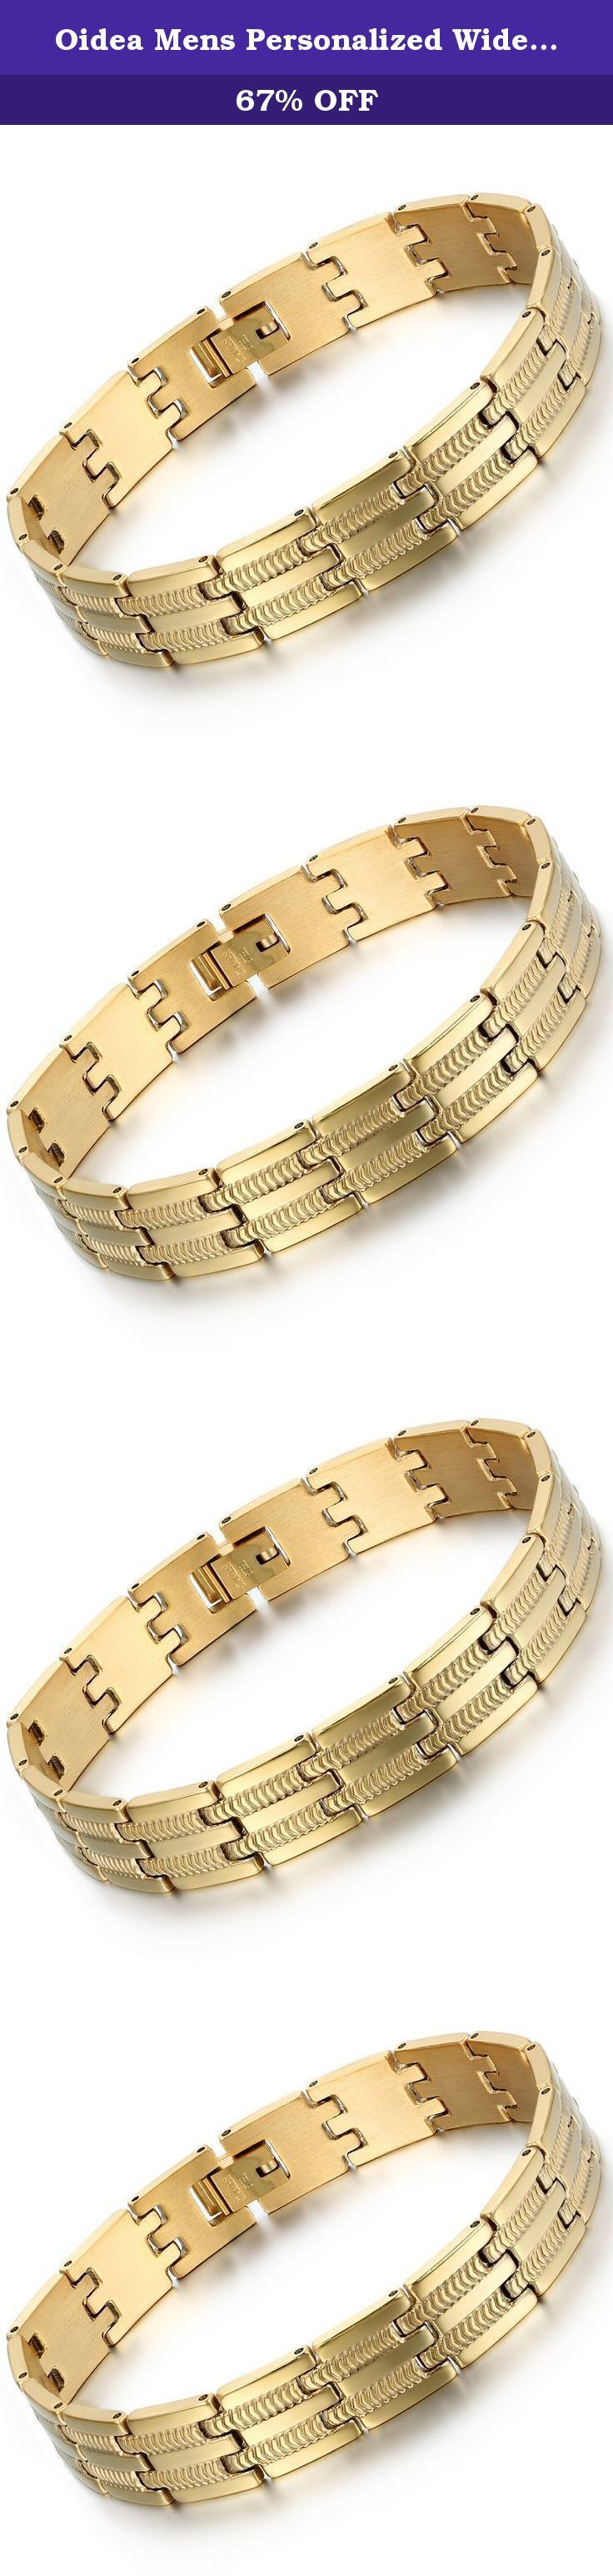 Oidea Mens Personalized Wide Stainless Steel Snake Bone Bracelet,Gold,with Gift Bag. An high-end personized men bracelet, perfect for daily wear or any high-end occasion Personalized snake bone chain bracelet Why choose Stainless Steel Jewelry Stainless steel does not readily corrode, rust or stain with water as ordinary metal does Its resistance to corrosion and staining, low maintenance and familiar lustre make it an ideal material for jewelry Able to endure a lot of wear and tear. And…